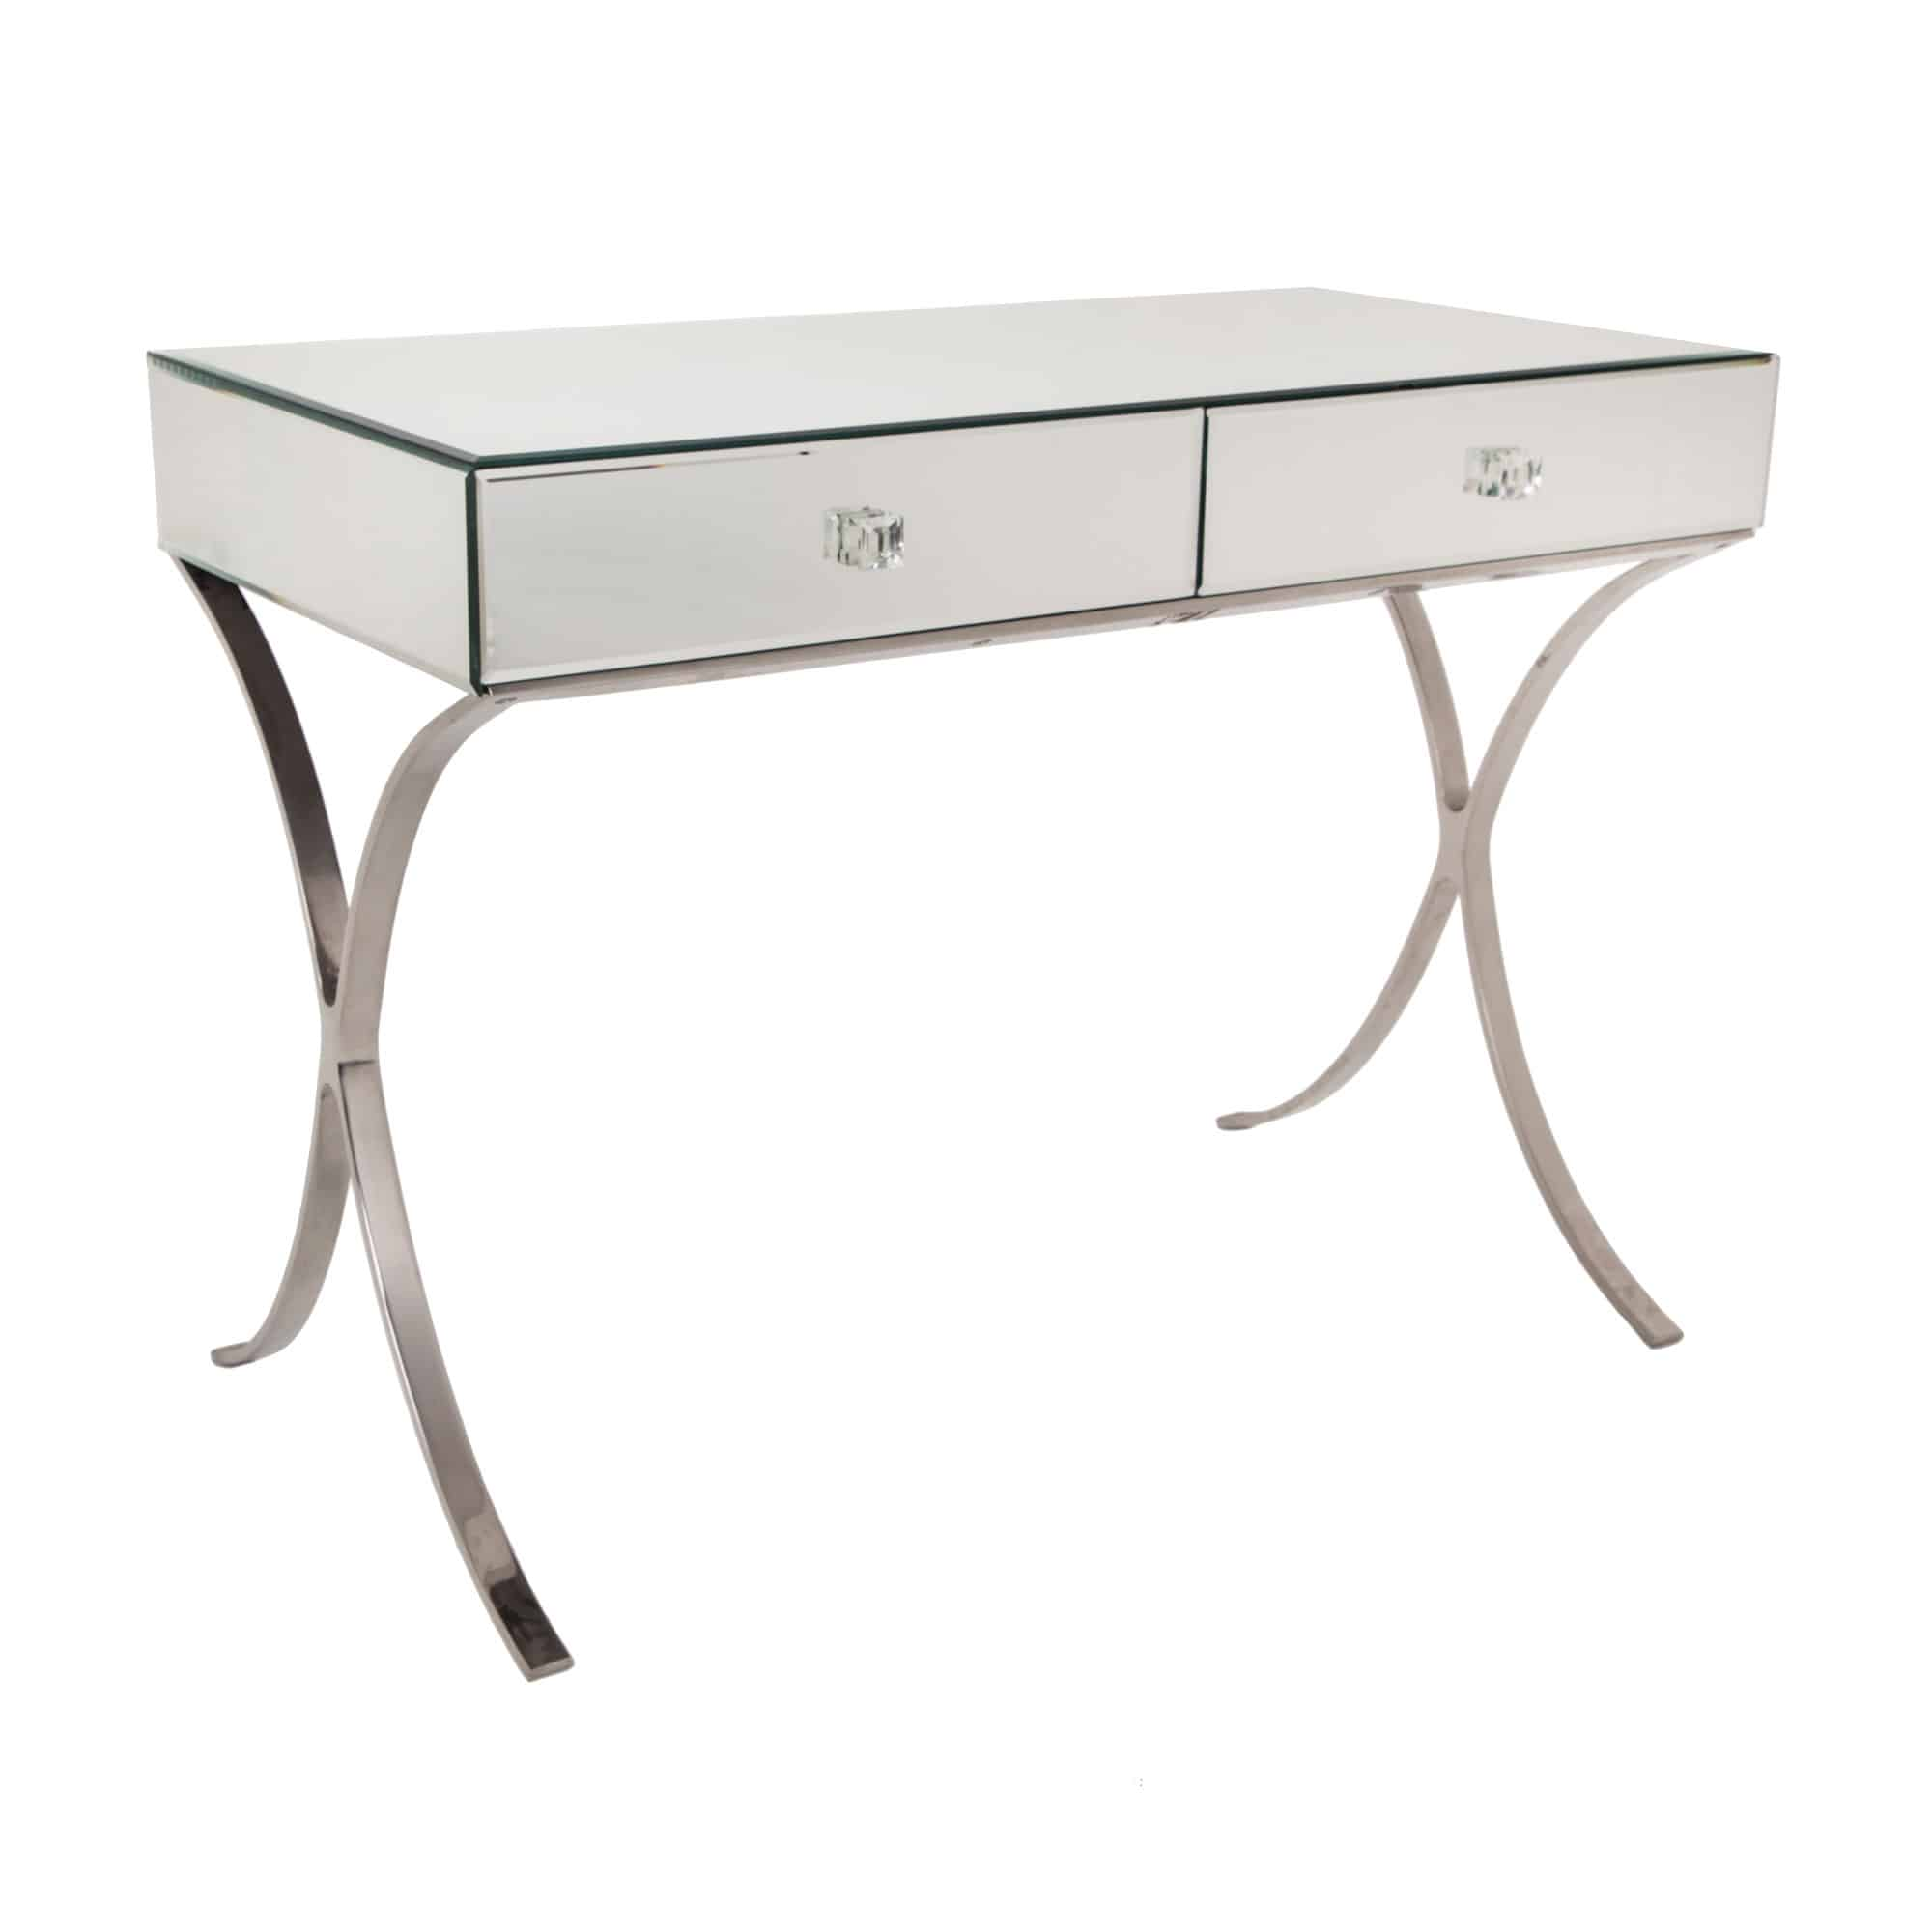 Sovana Console 8992 mirror finish